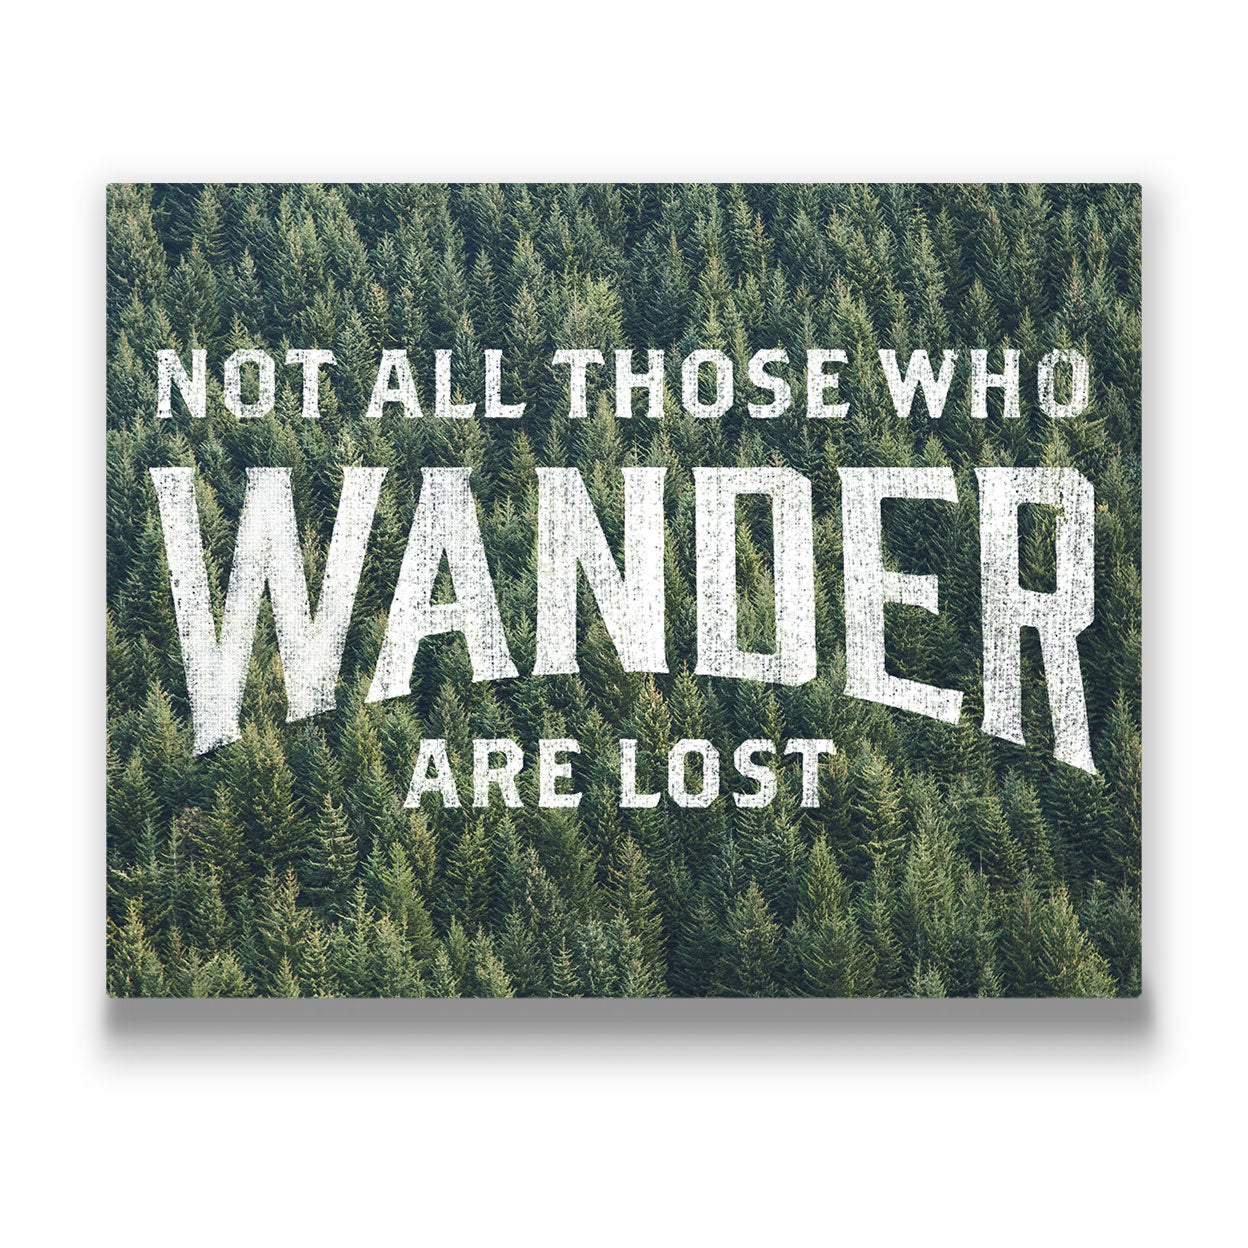 16ed1488bf81 Not All Those Who Wander Are Lost - Canvas Wall Art